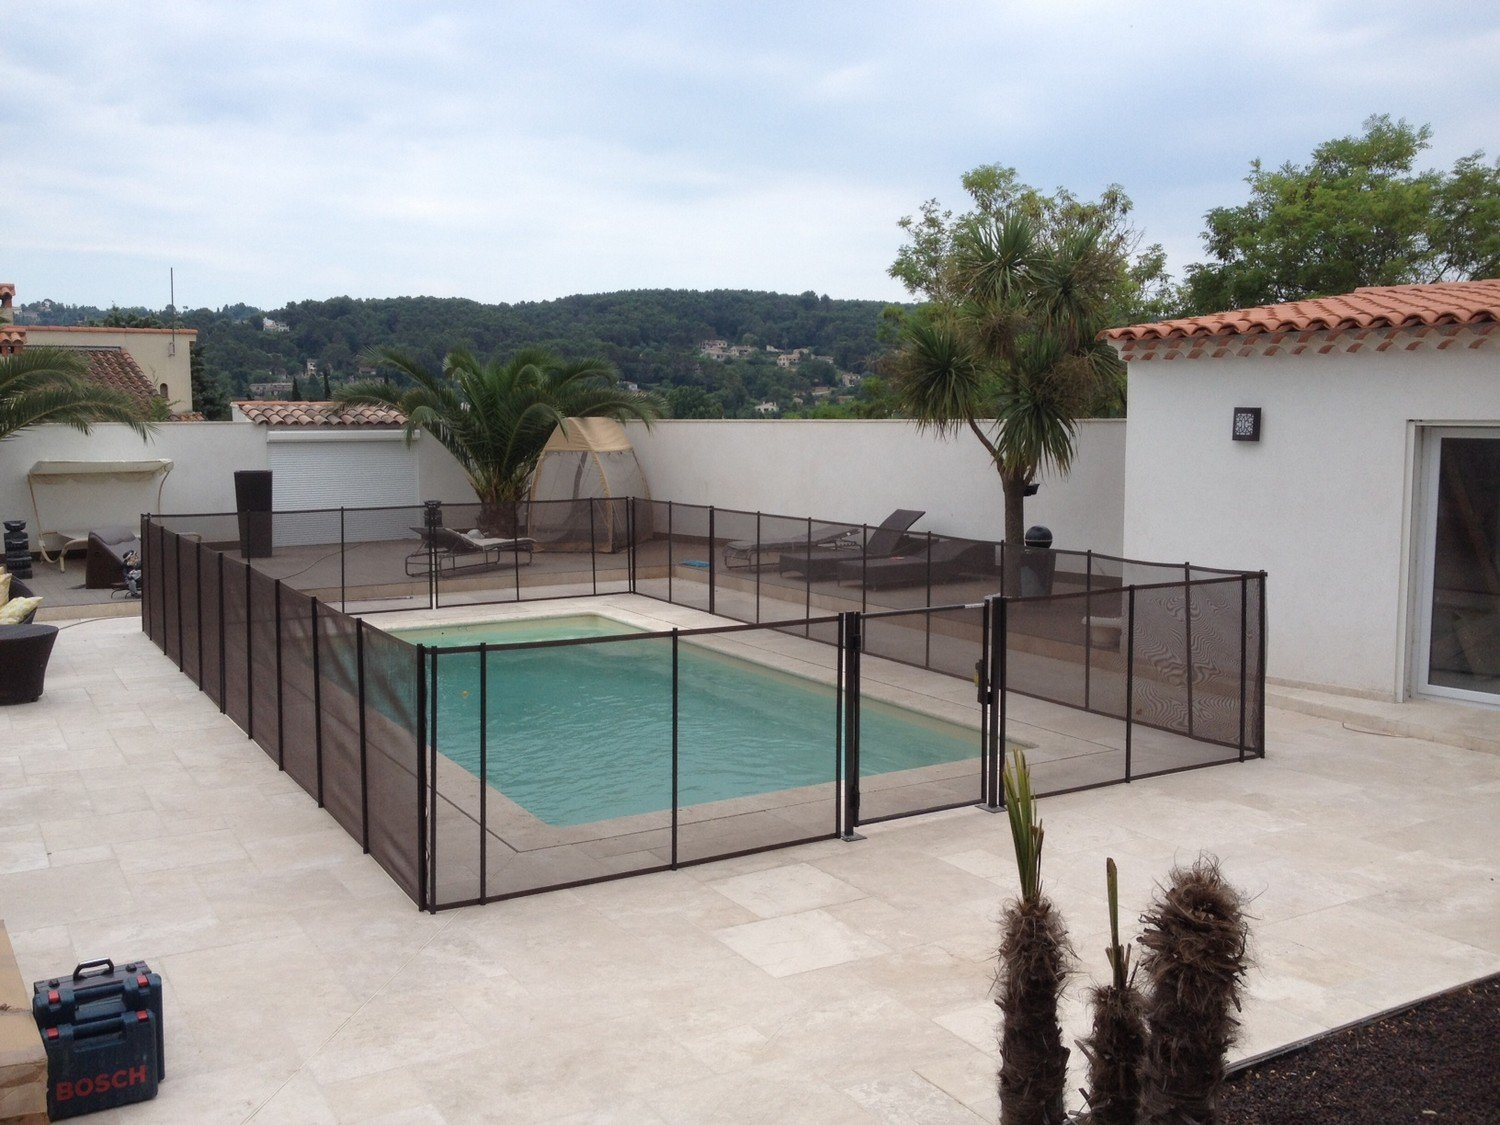 Barri re de s curit piscine la beethoven for Barriere de protection piscine